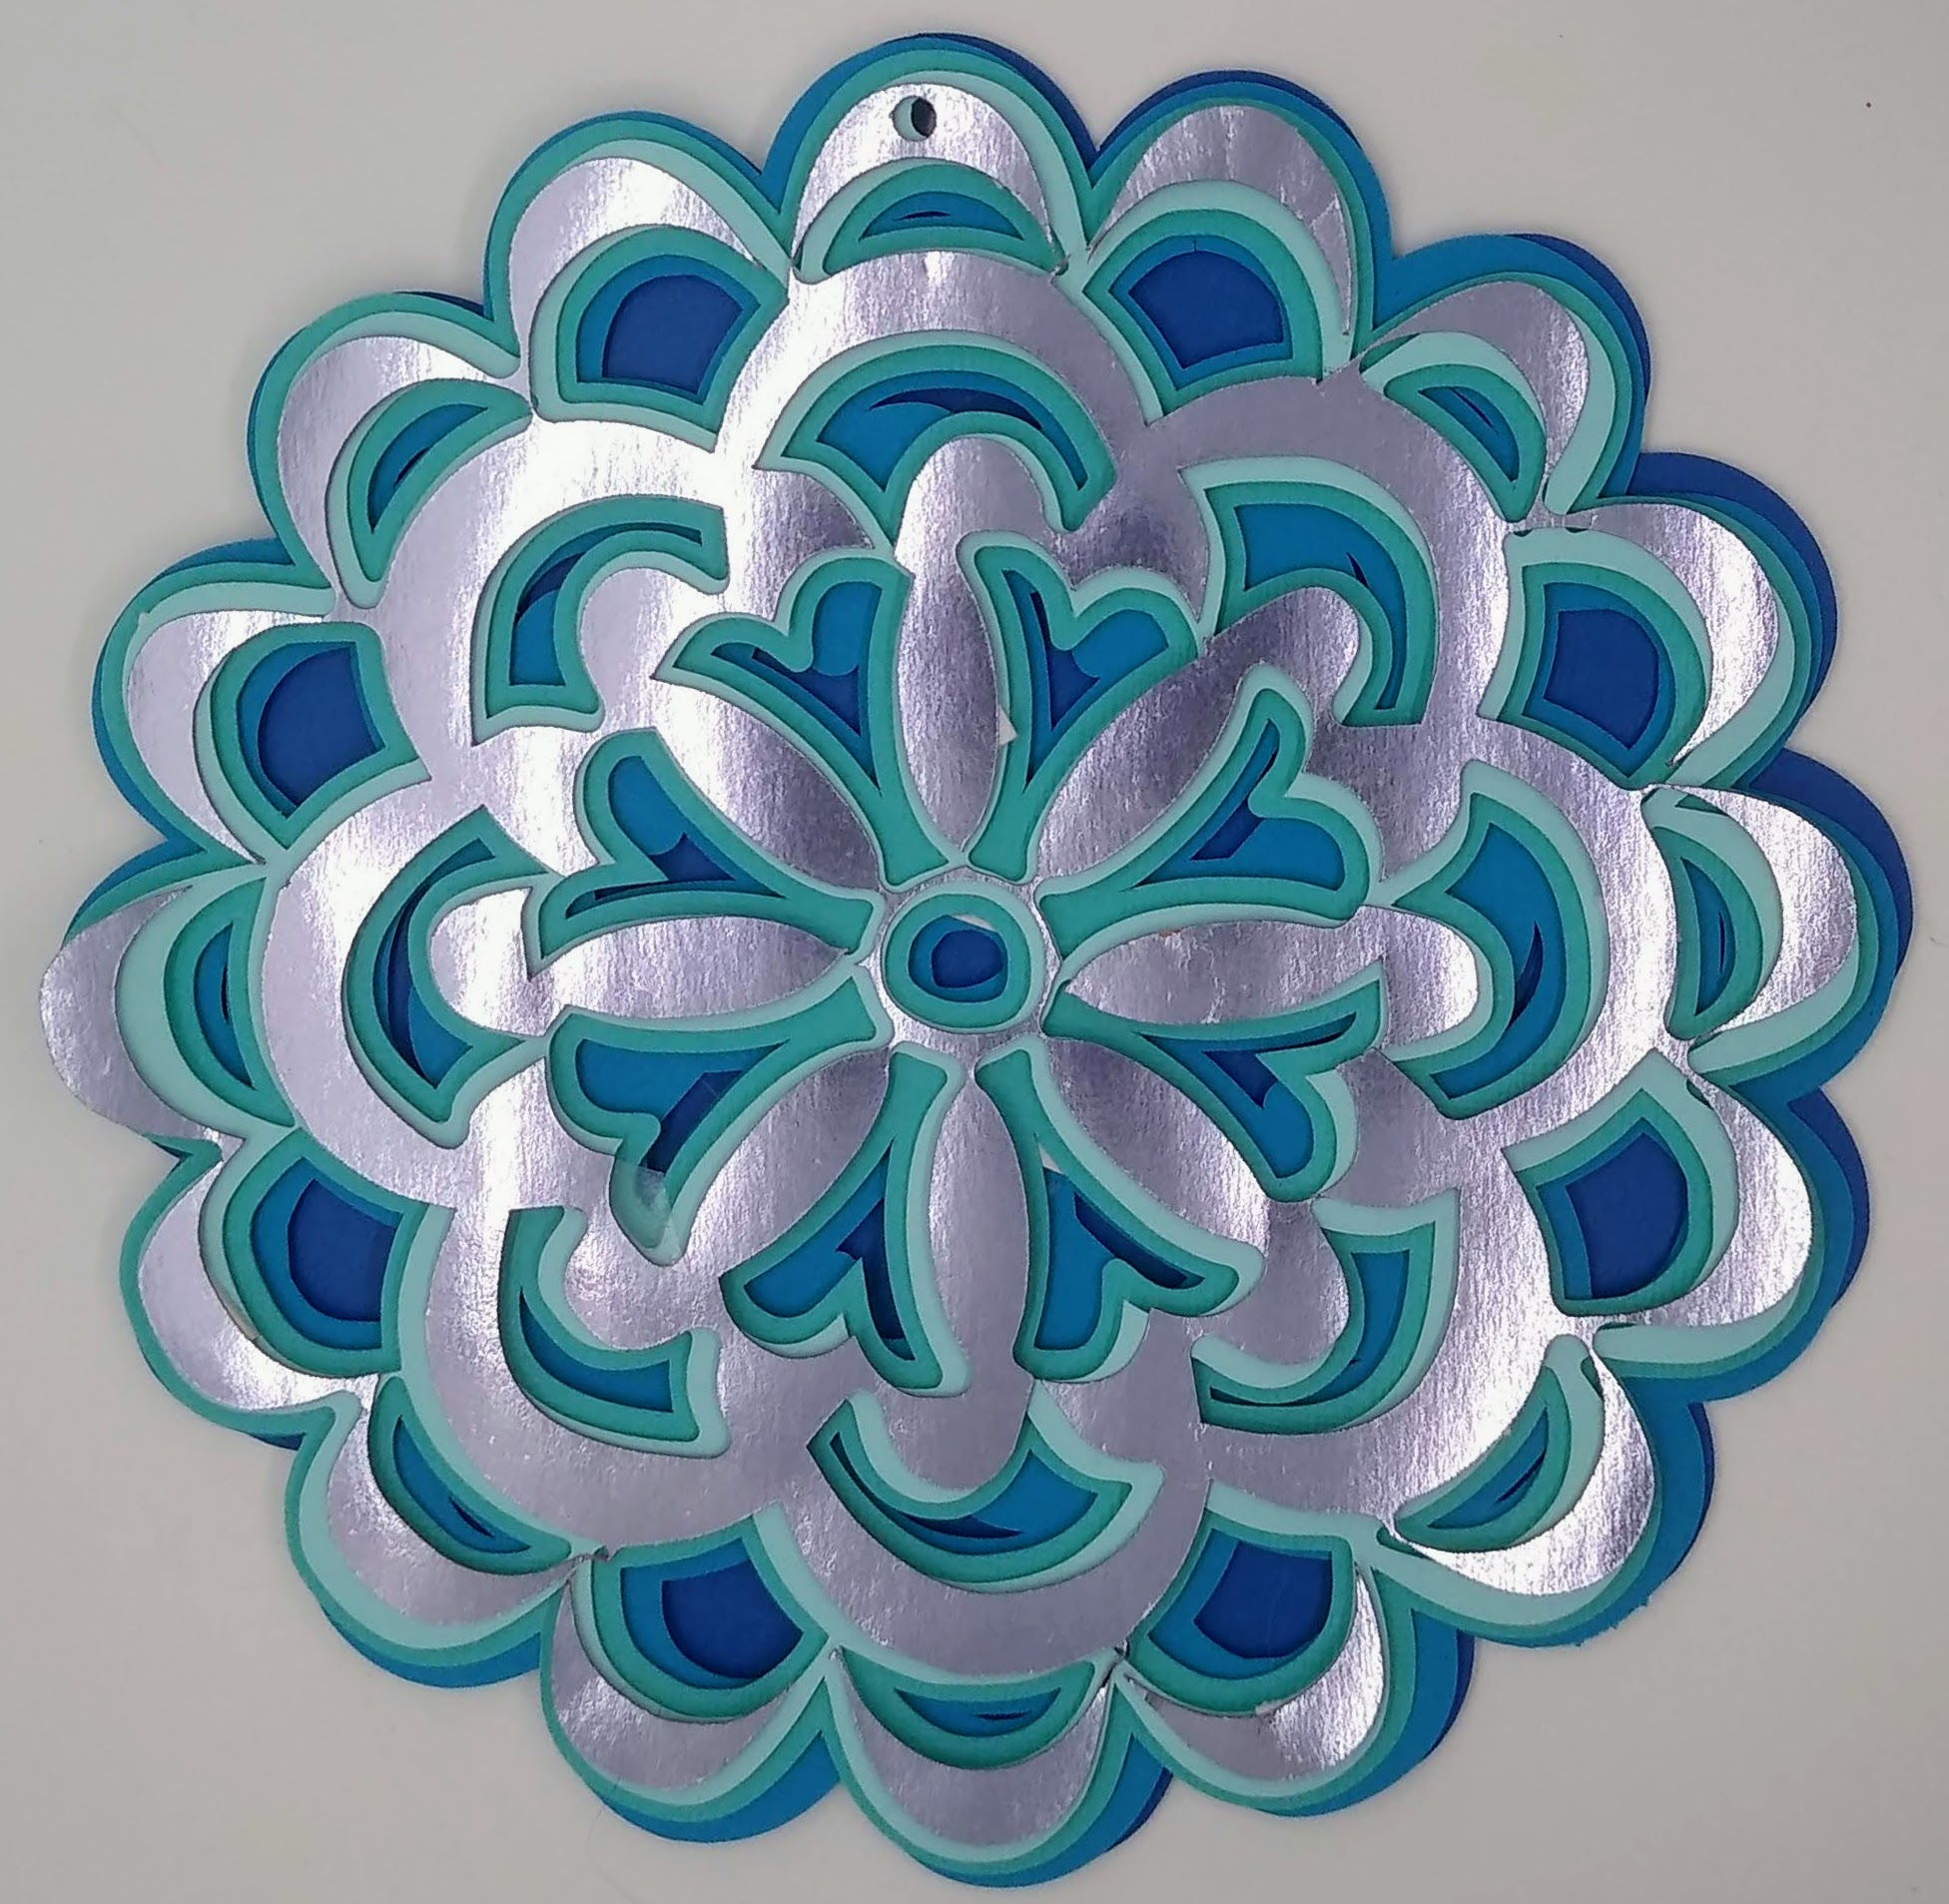 Flower Layered Mandala: Special Notes